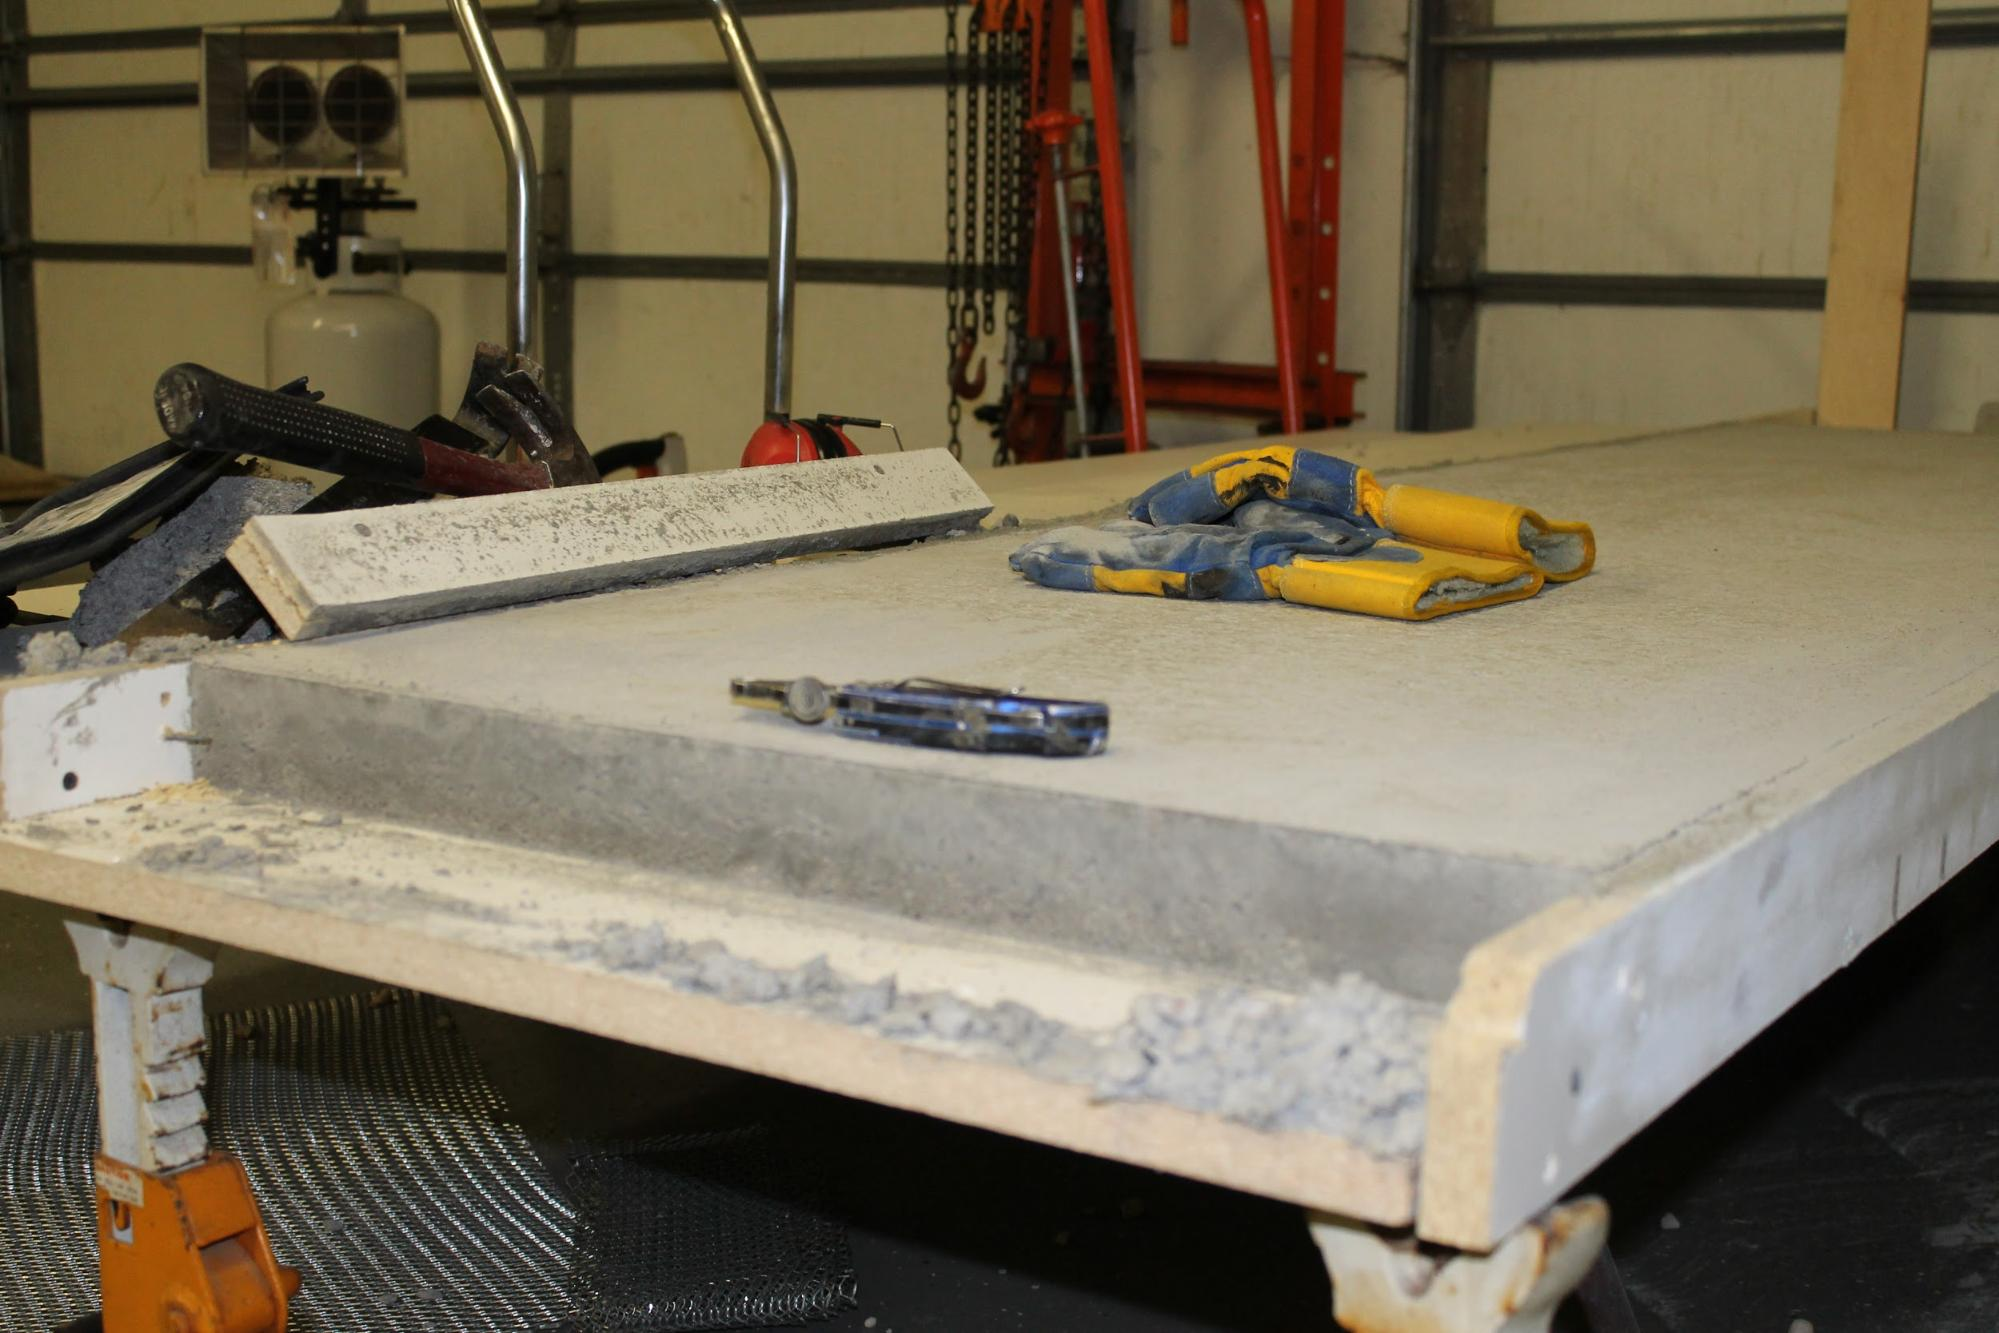 Making Your Own Concrete Countertop Diy Concrete Countertops In A Beautiful Master Bathroom Renovation